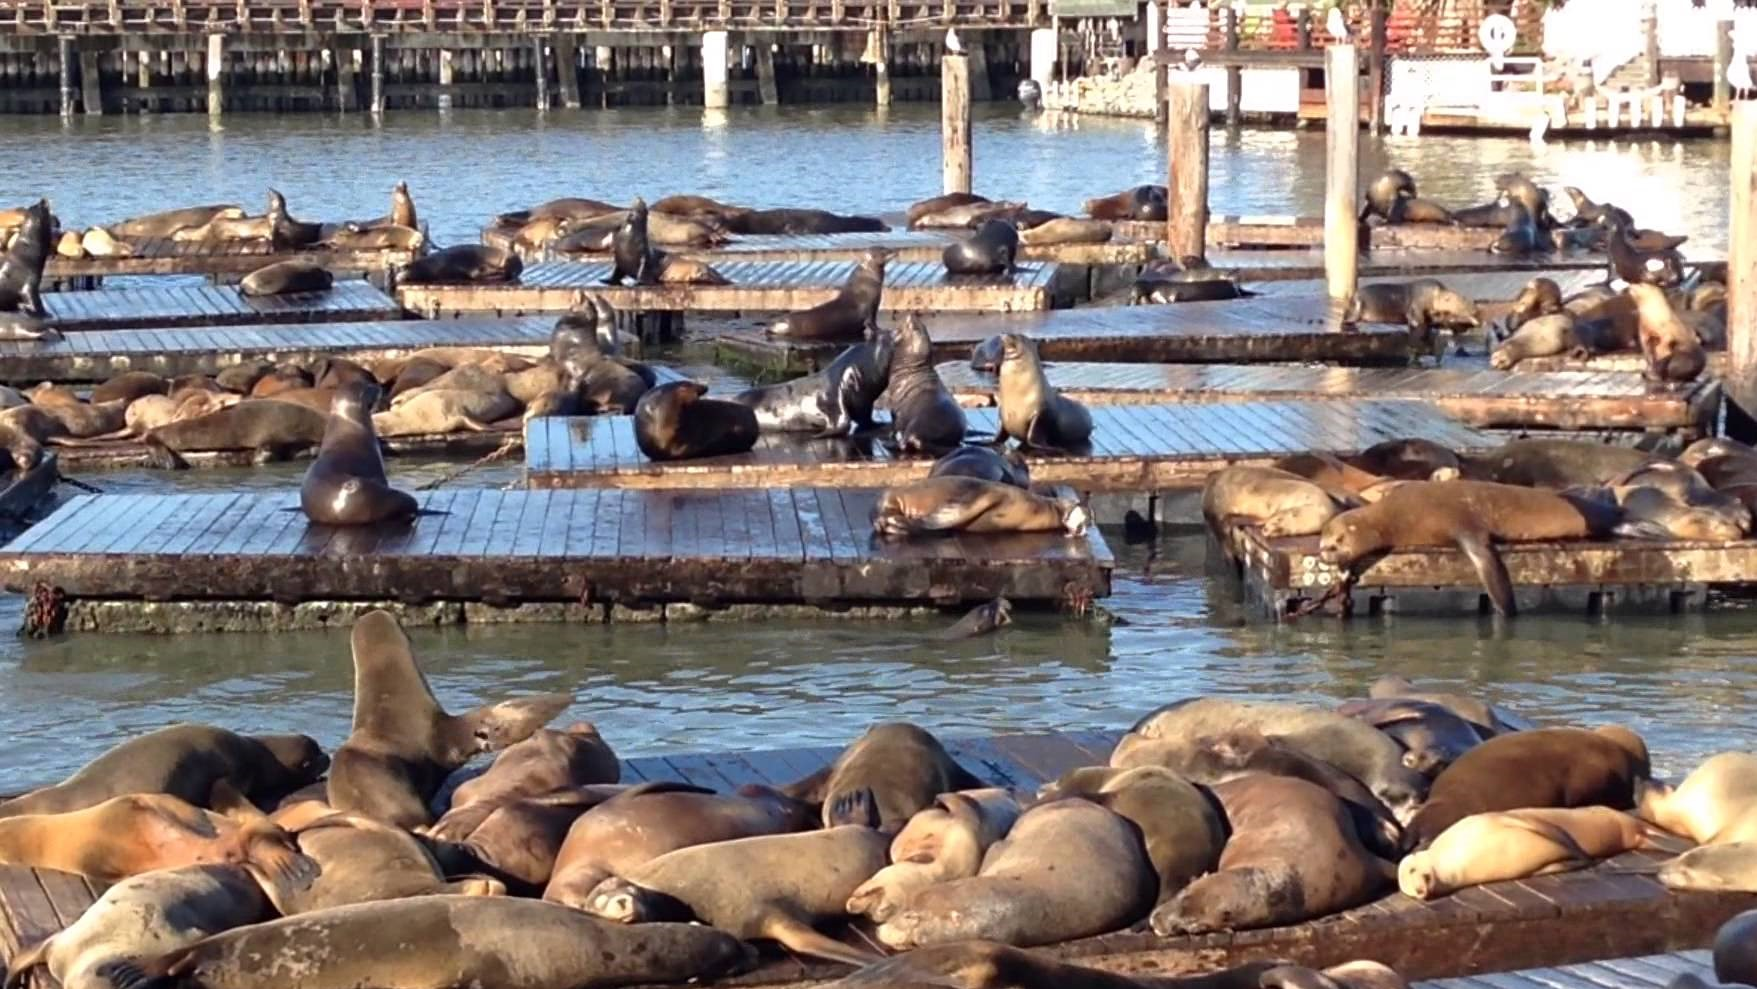 Two Rare Sea Lion Attacks Shut Down Aquatic Park in San Francisco